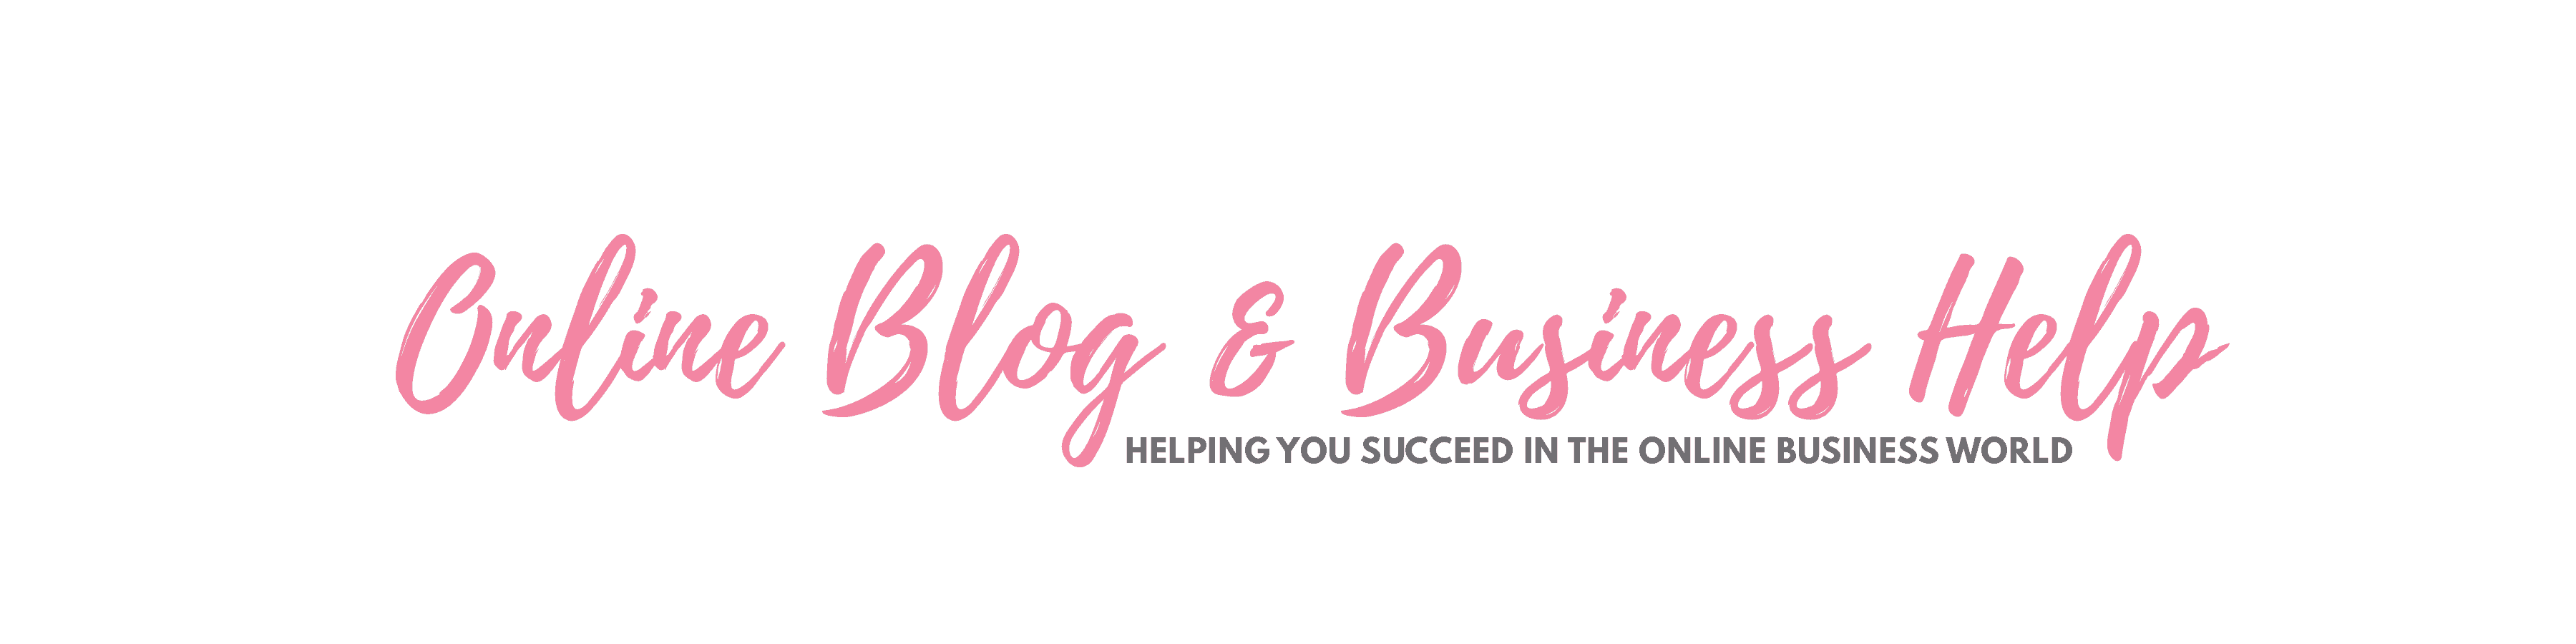 Online Blog & Business Help